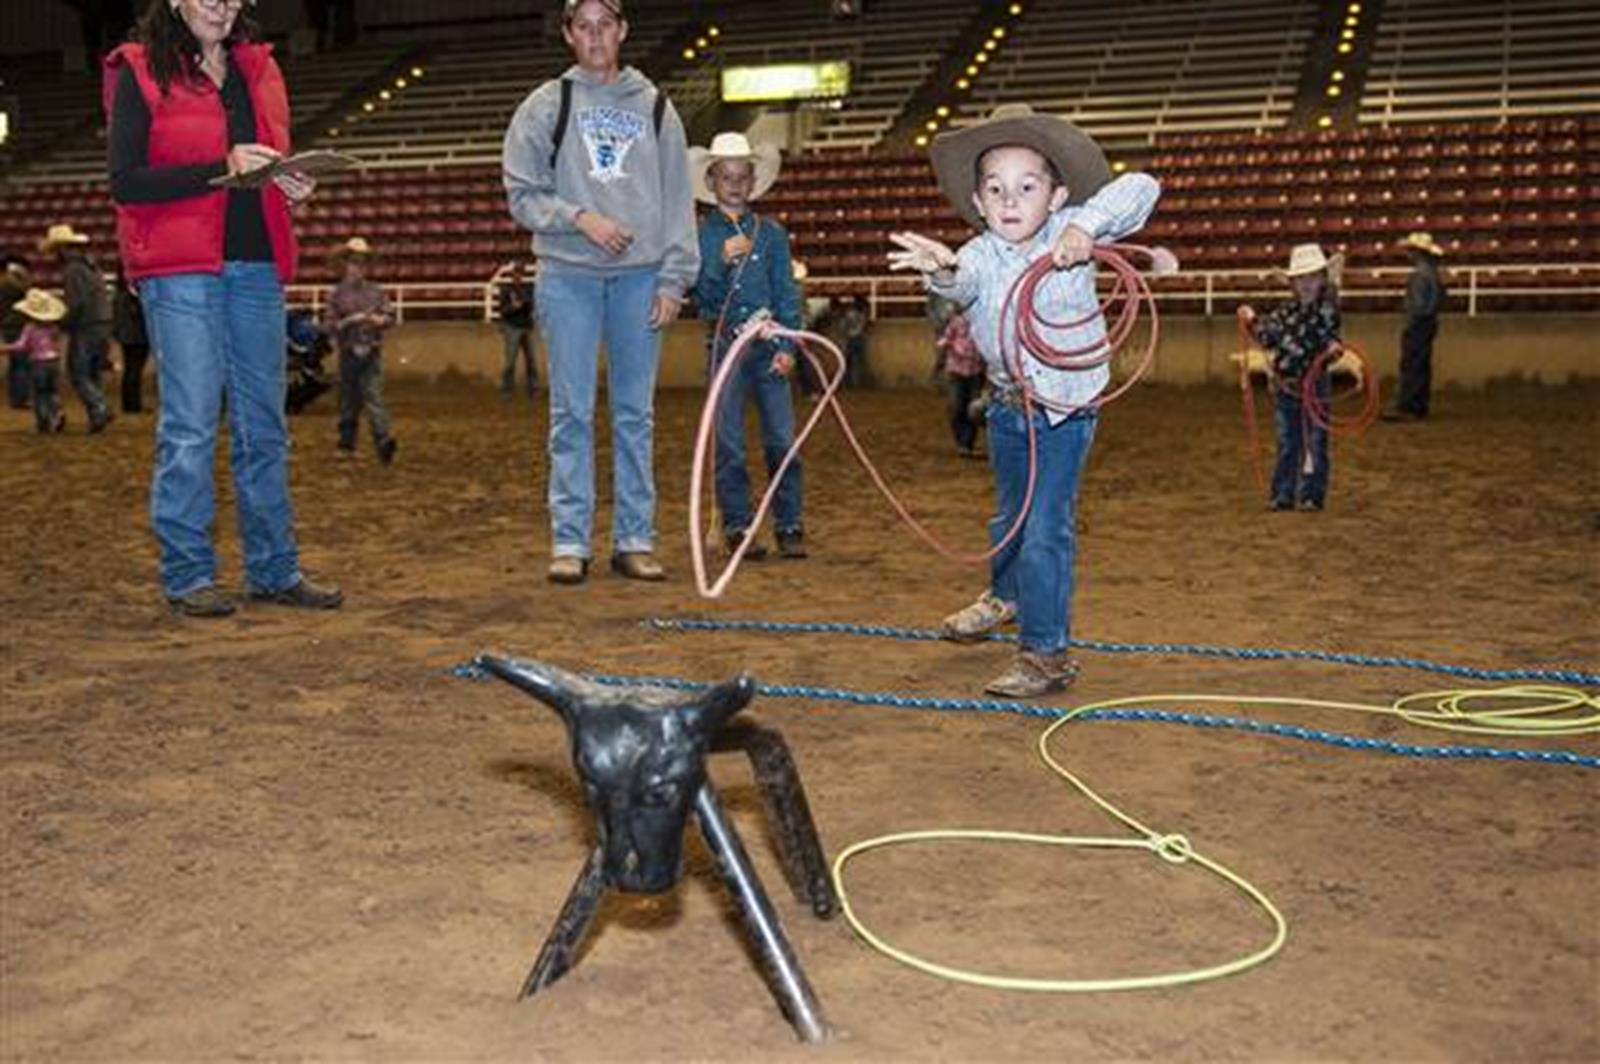 Participating in the youth rodeo competition. Credit: Utah Youth Rodeo Association.